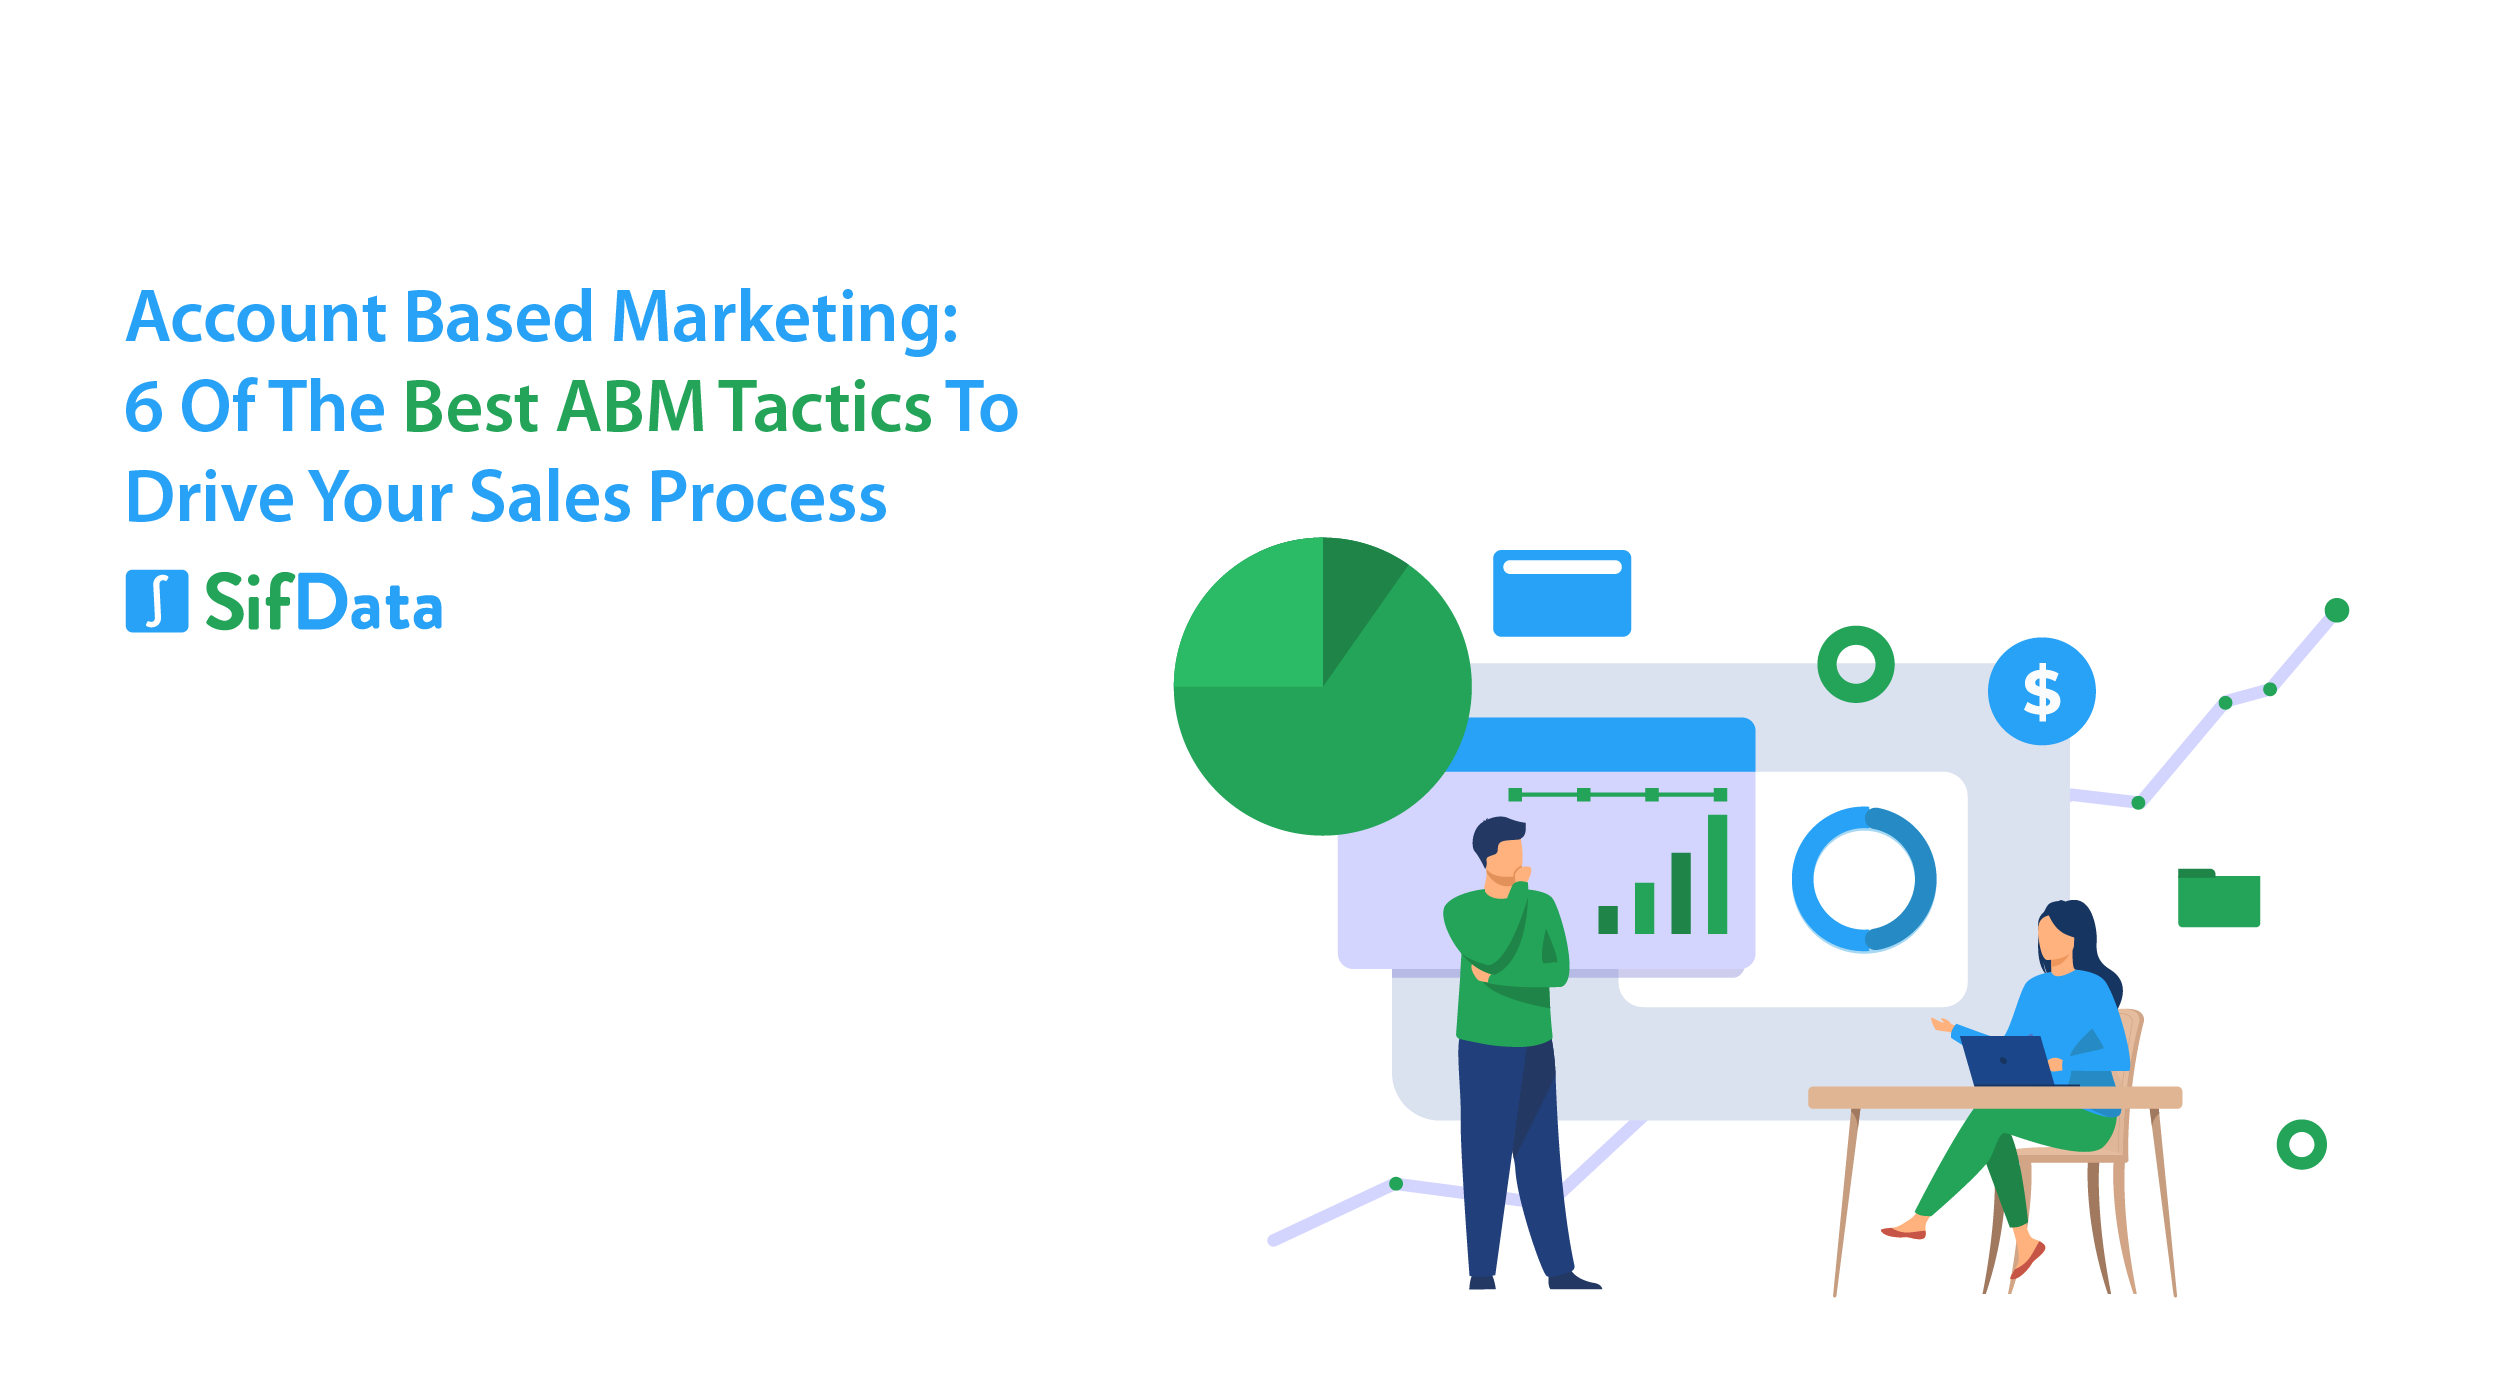 ACCOUNT BASED MARKETING: 6 OF THE BEST ABM TACTICS TO DRIVE YOUR SALES PROCESS